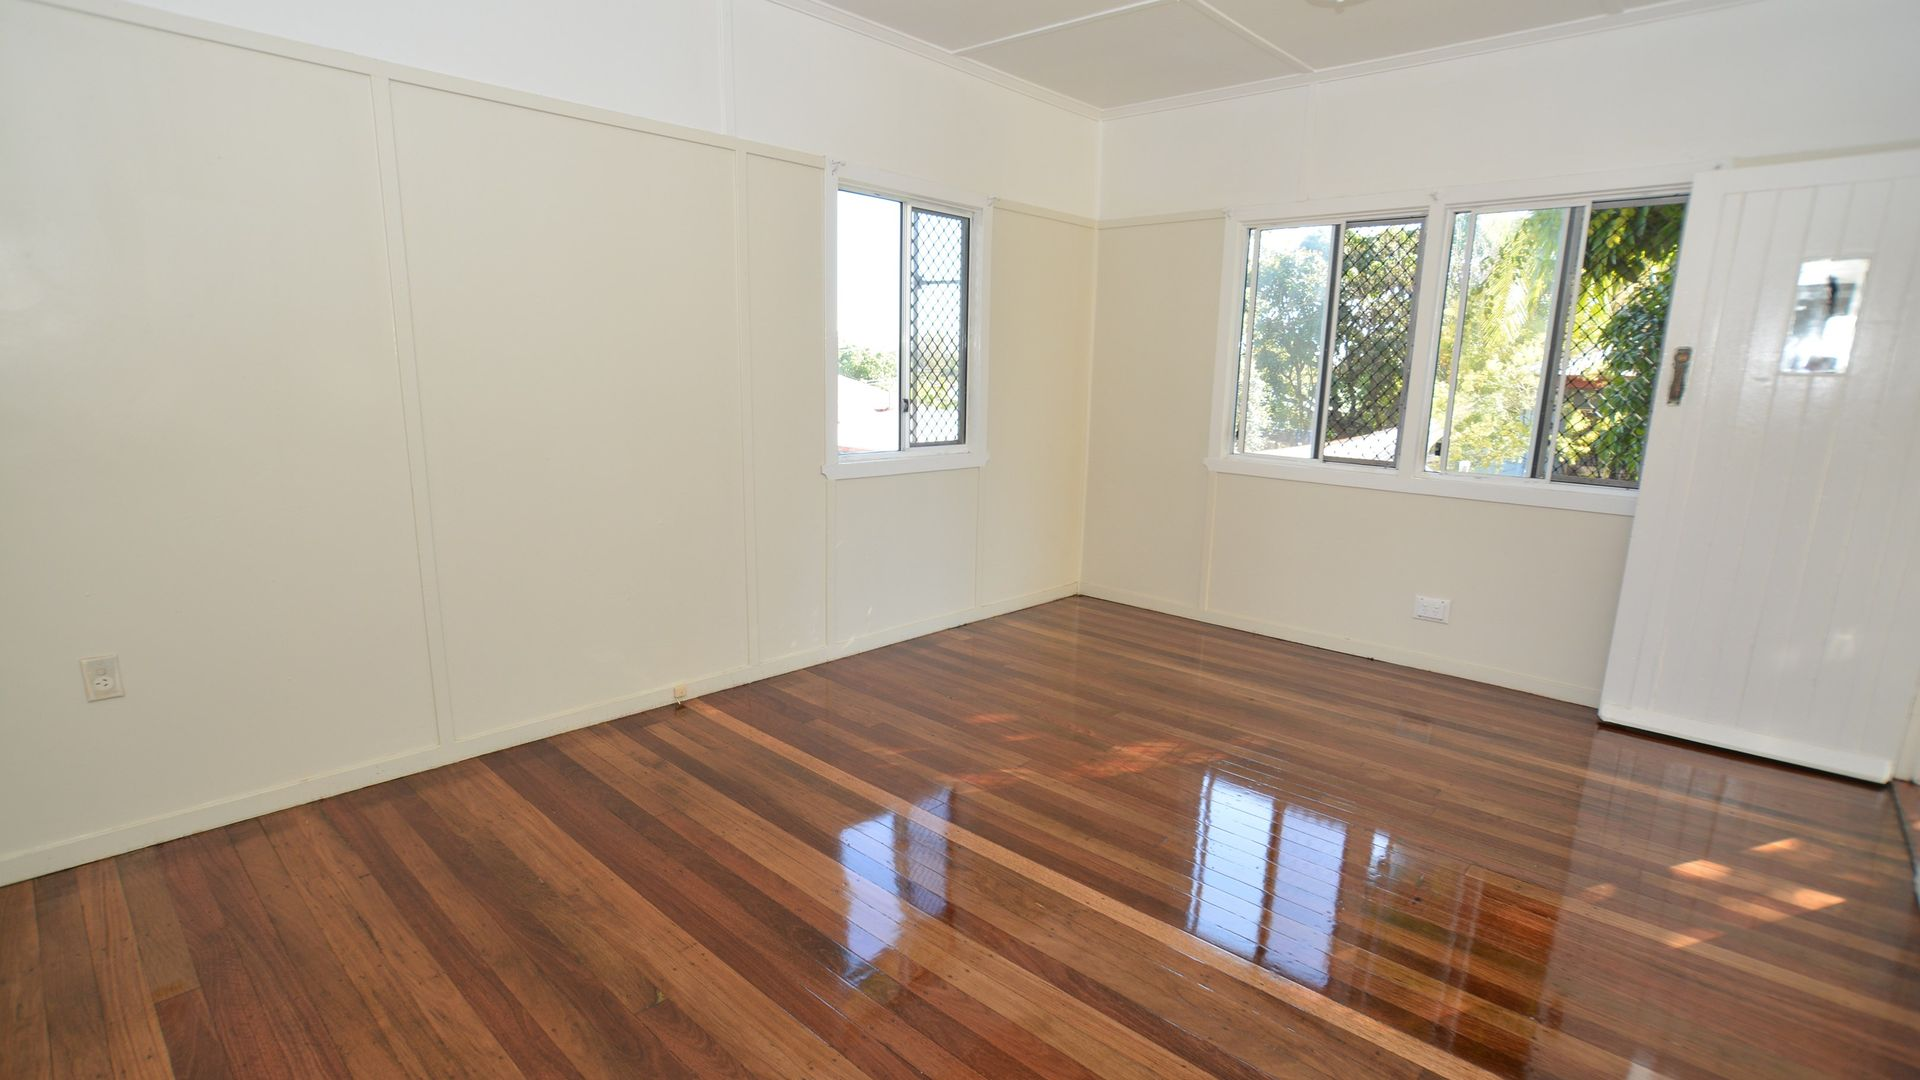 61 Funnell Street, Zillmere QLD 4034, Image 2